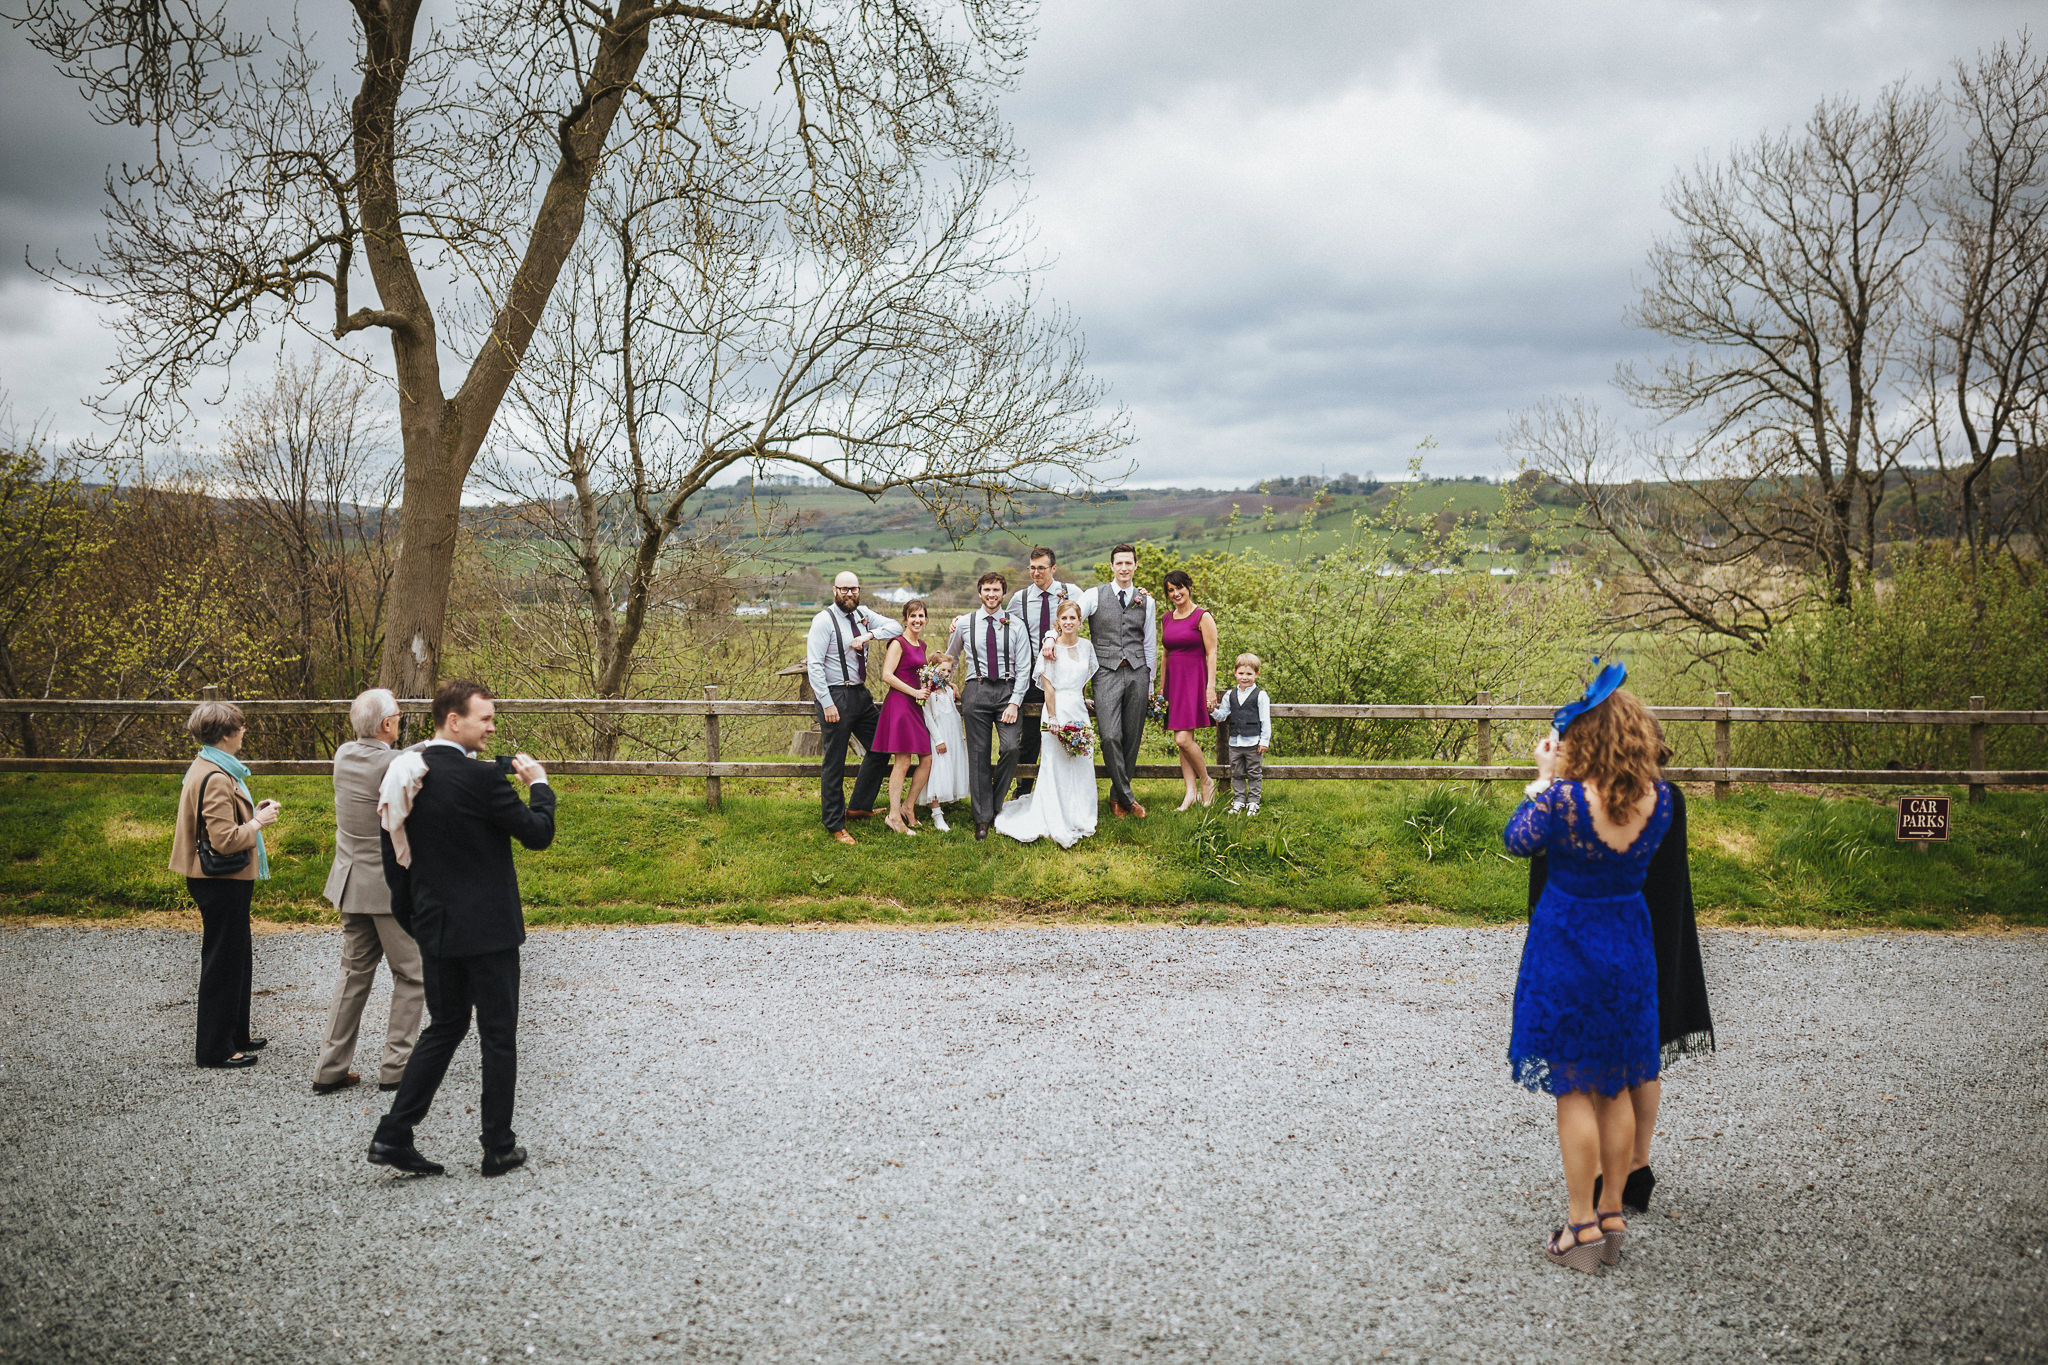 plas-isaf-corwen-north wales wedding-photography-photographer-91053